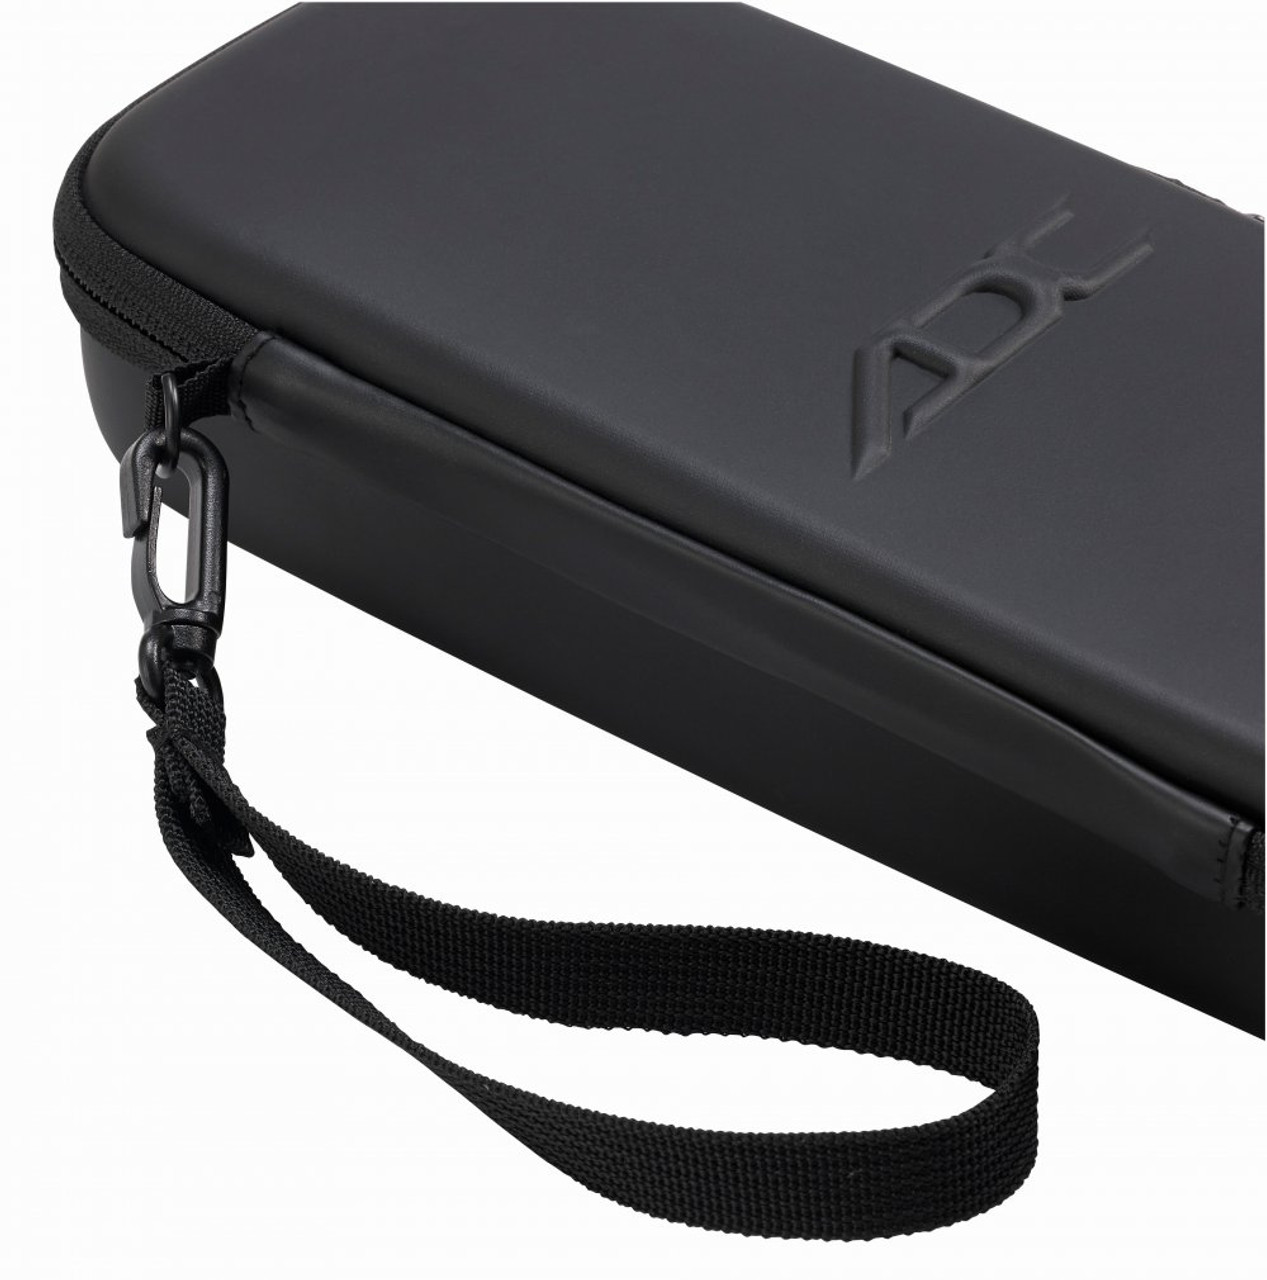 ADC MEDIC Every-Day Instrument Carry Case